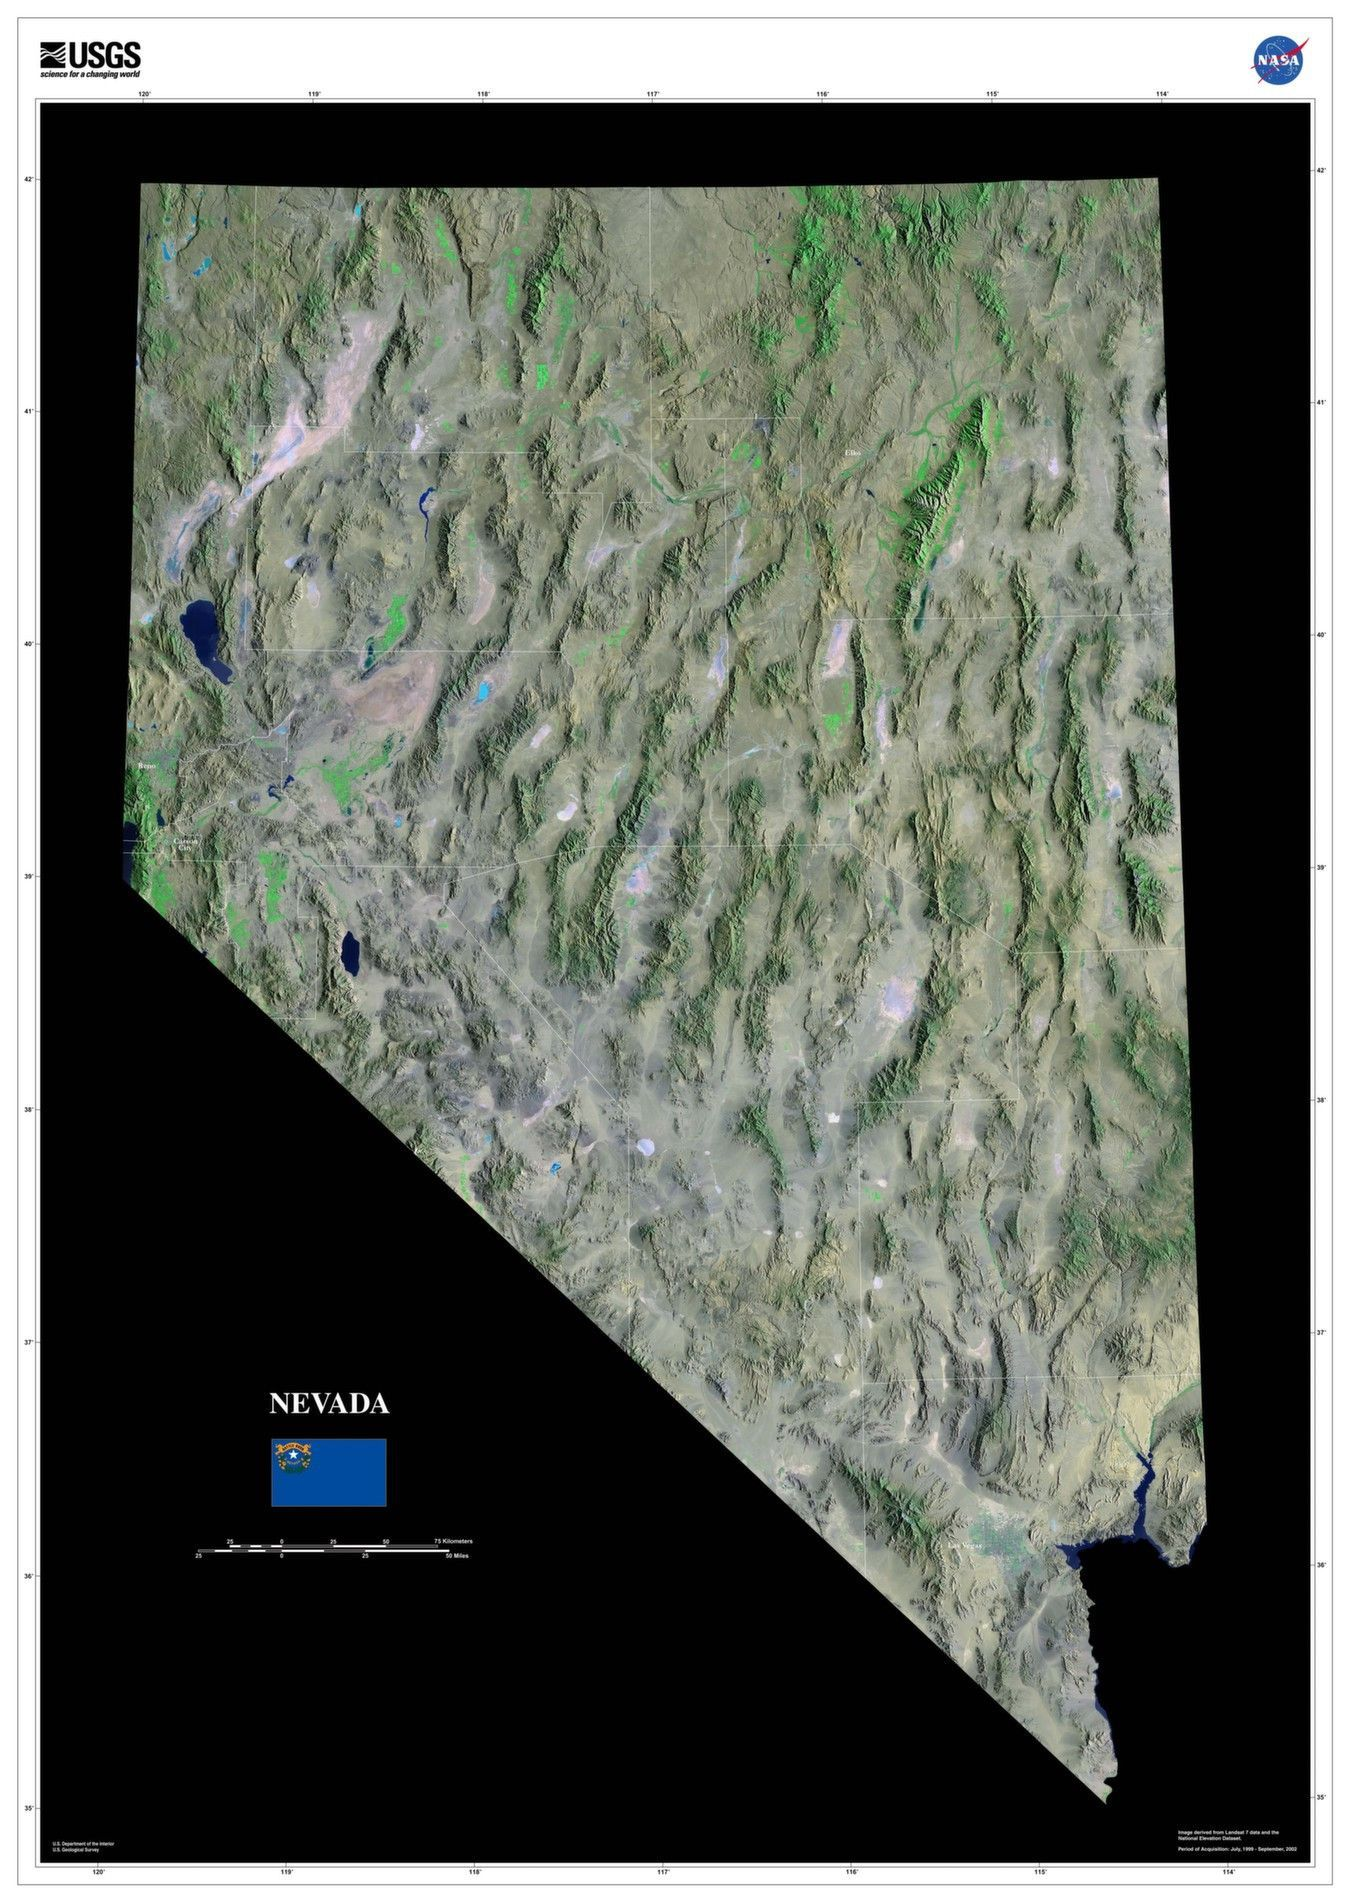 Nevada Satellite Imagery State Map Poster Nevada and City